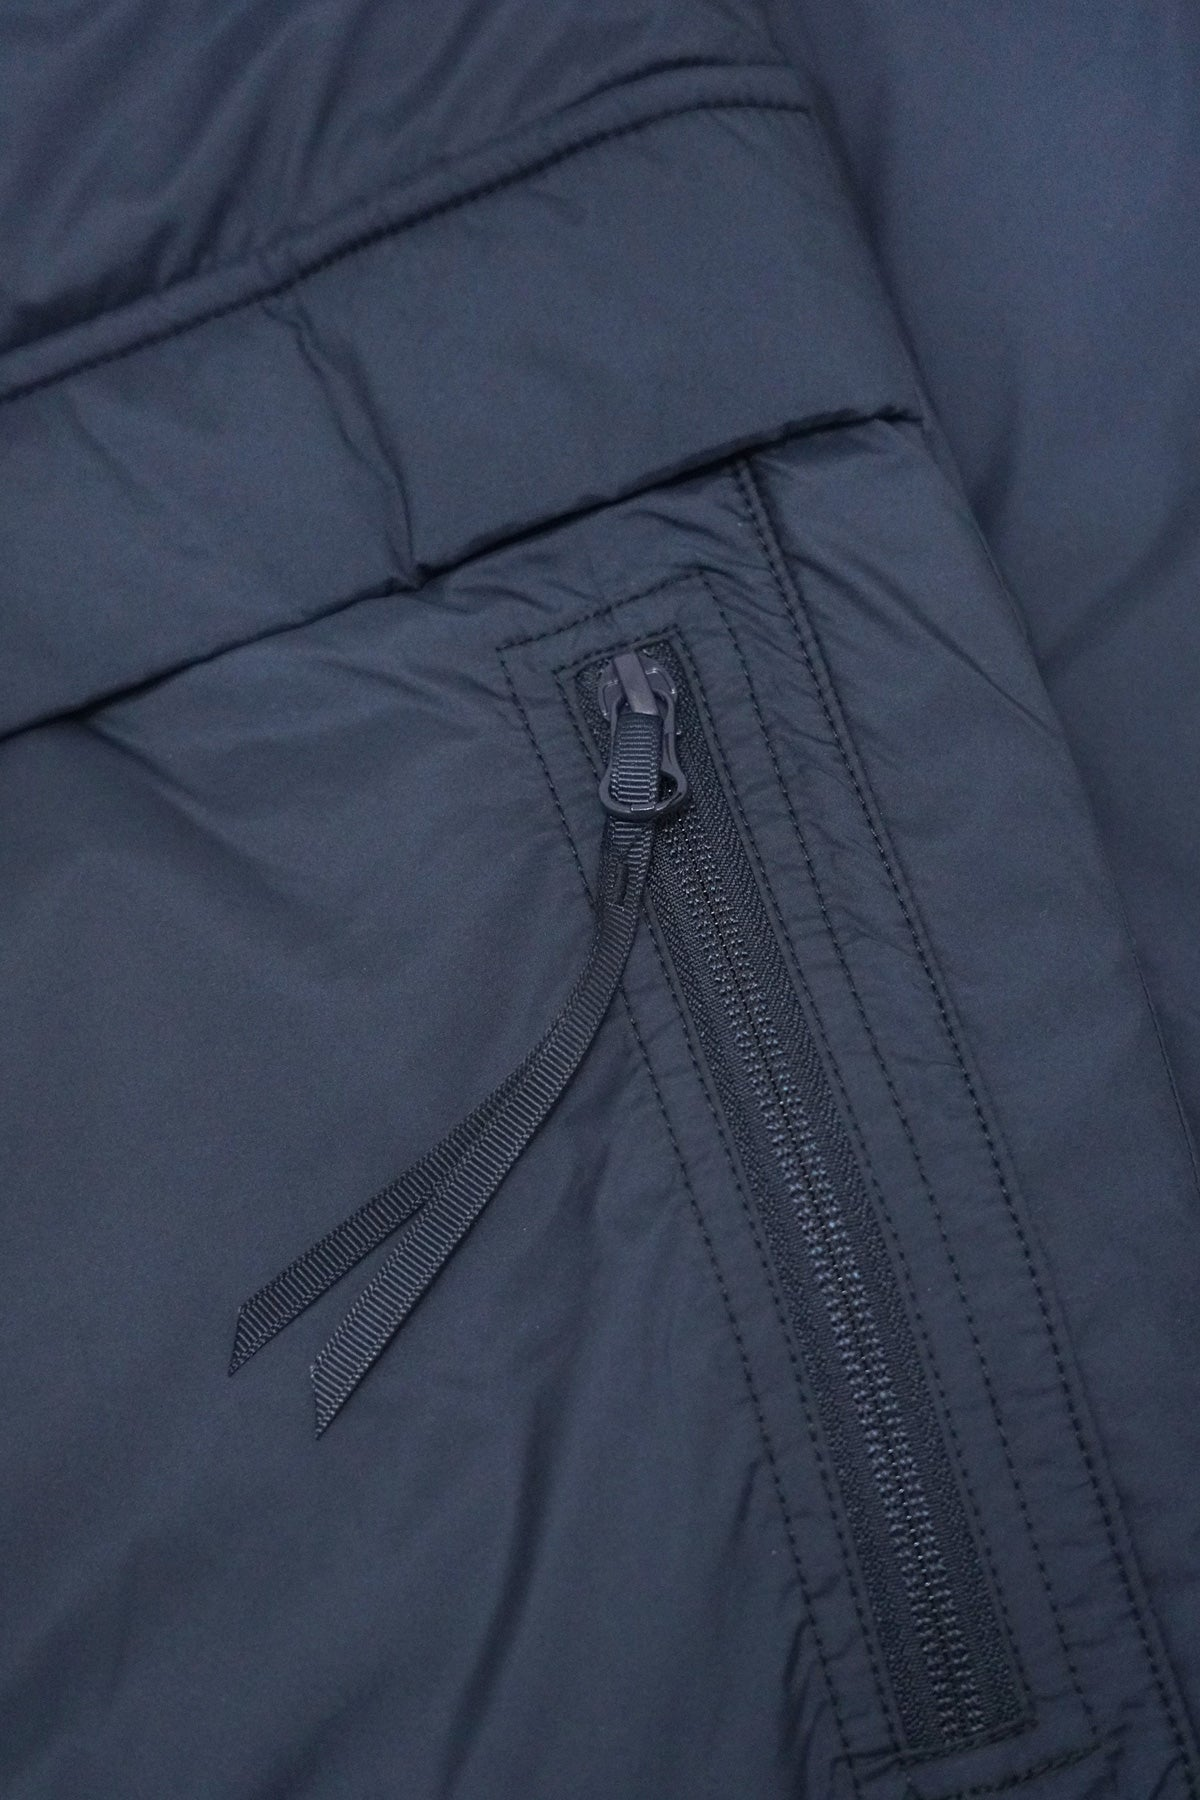 nanamica - Nanamican Insulation Jacket - Navy - Canoe Club